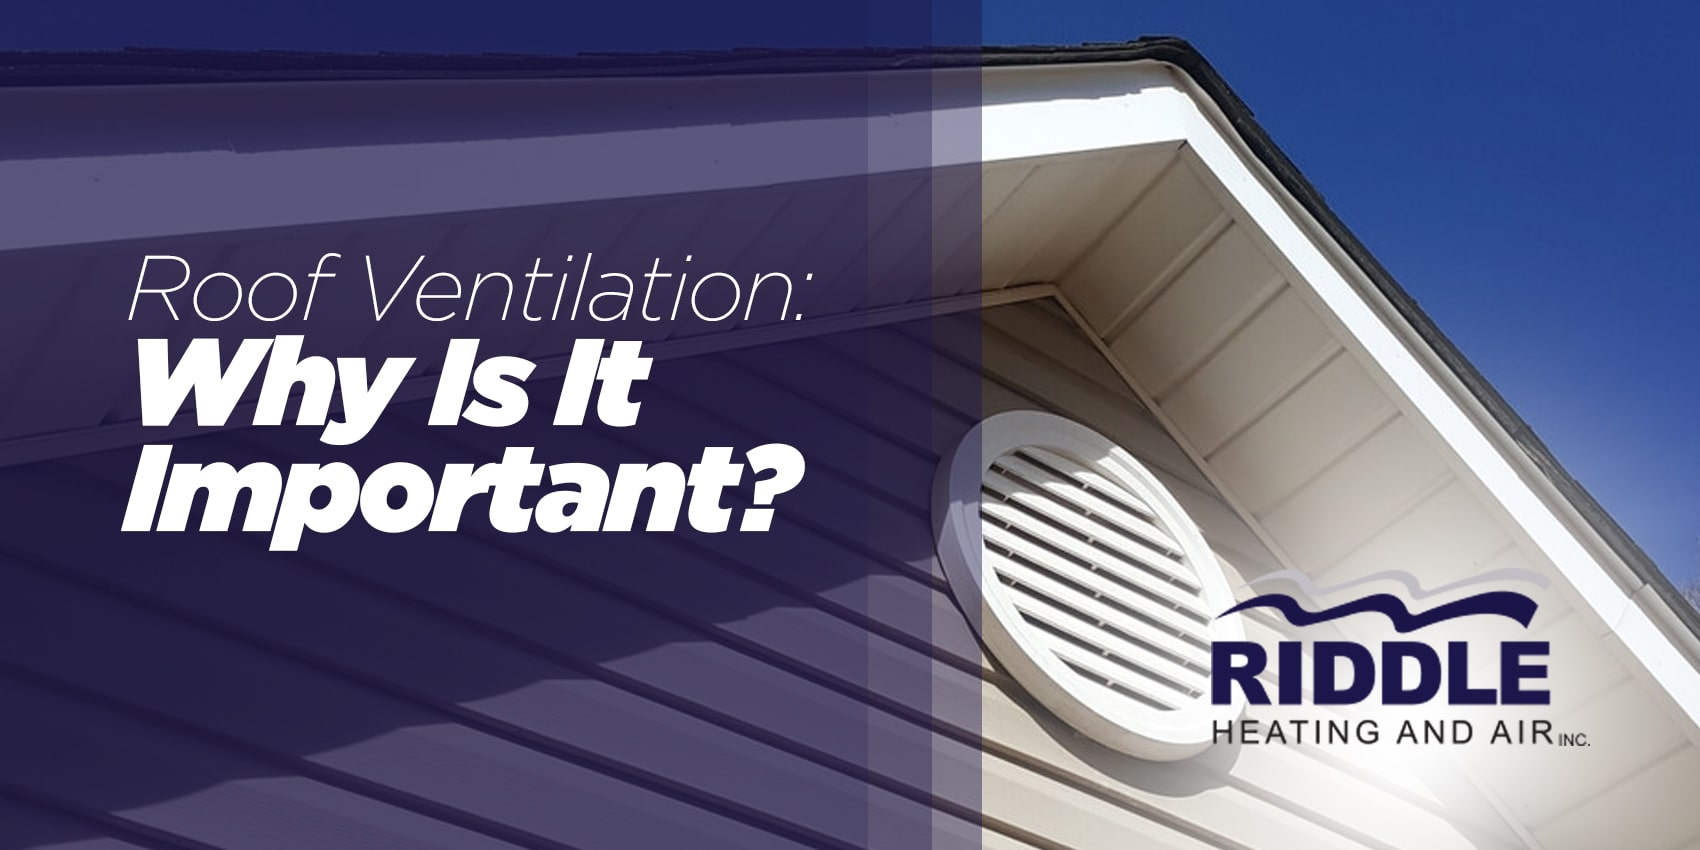 Roof Ventilation: Why Is It Important?